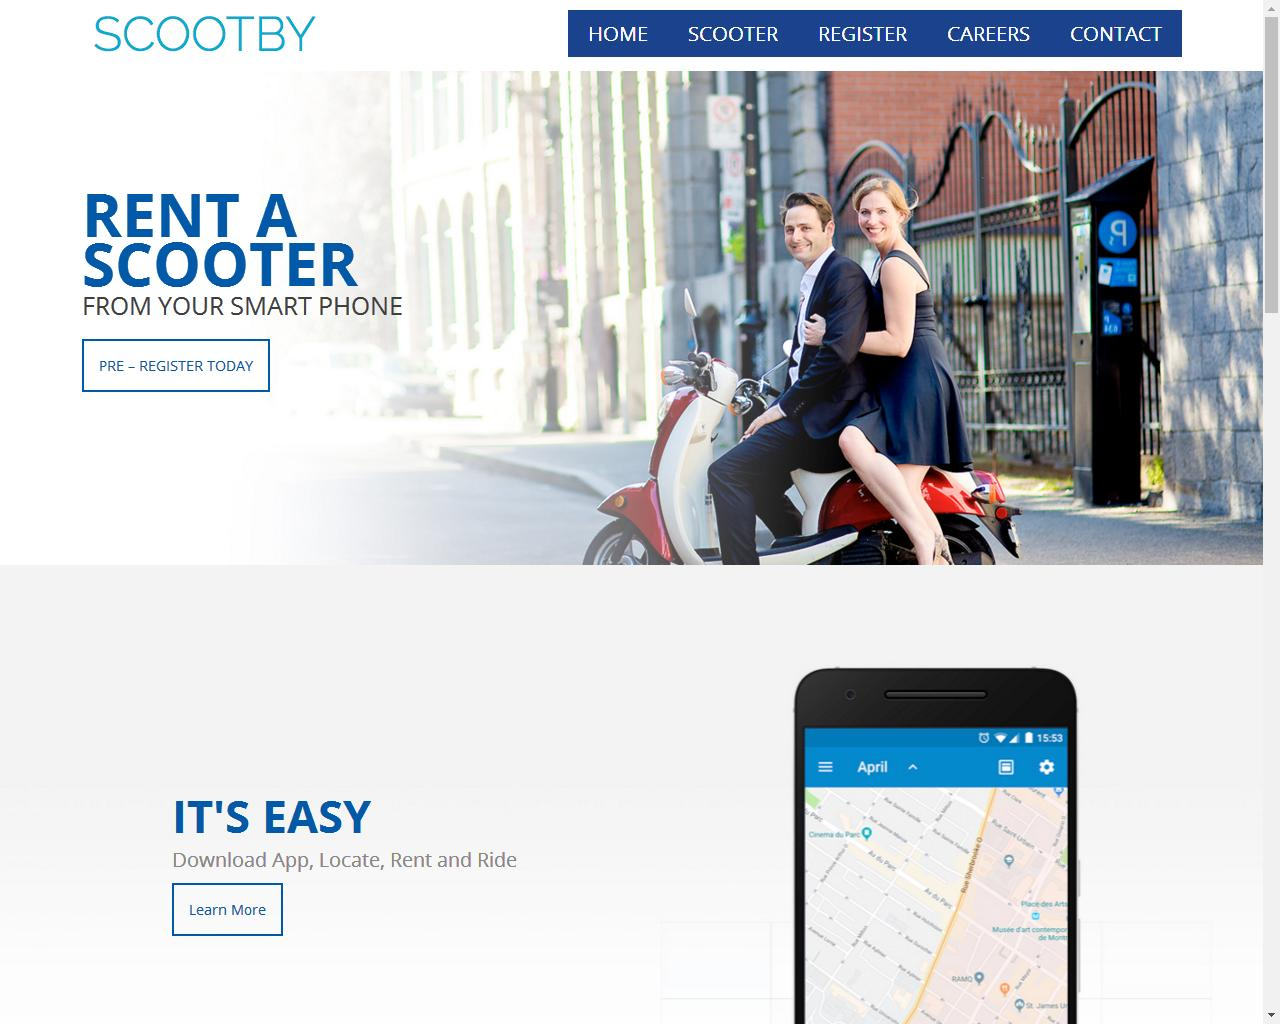 scootby